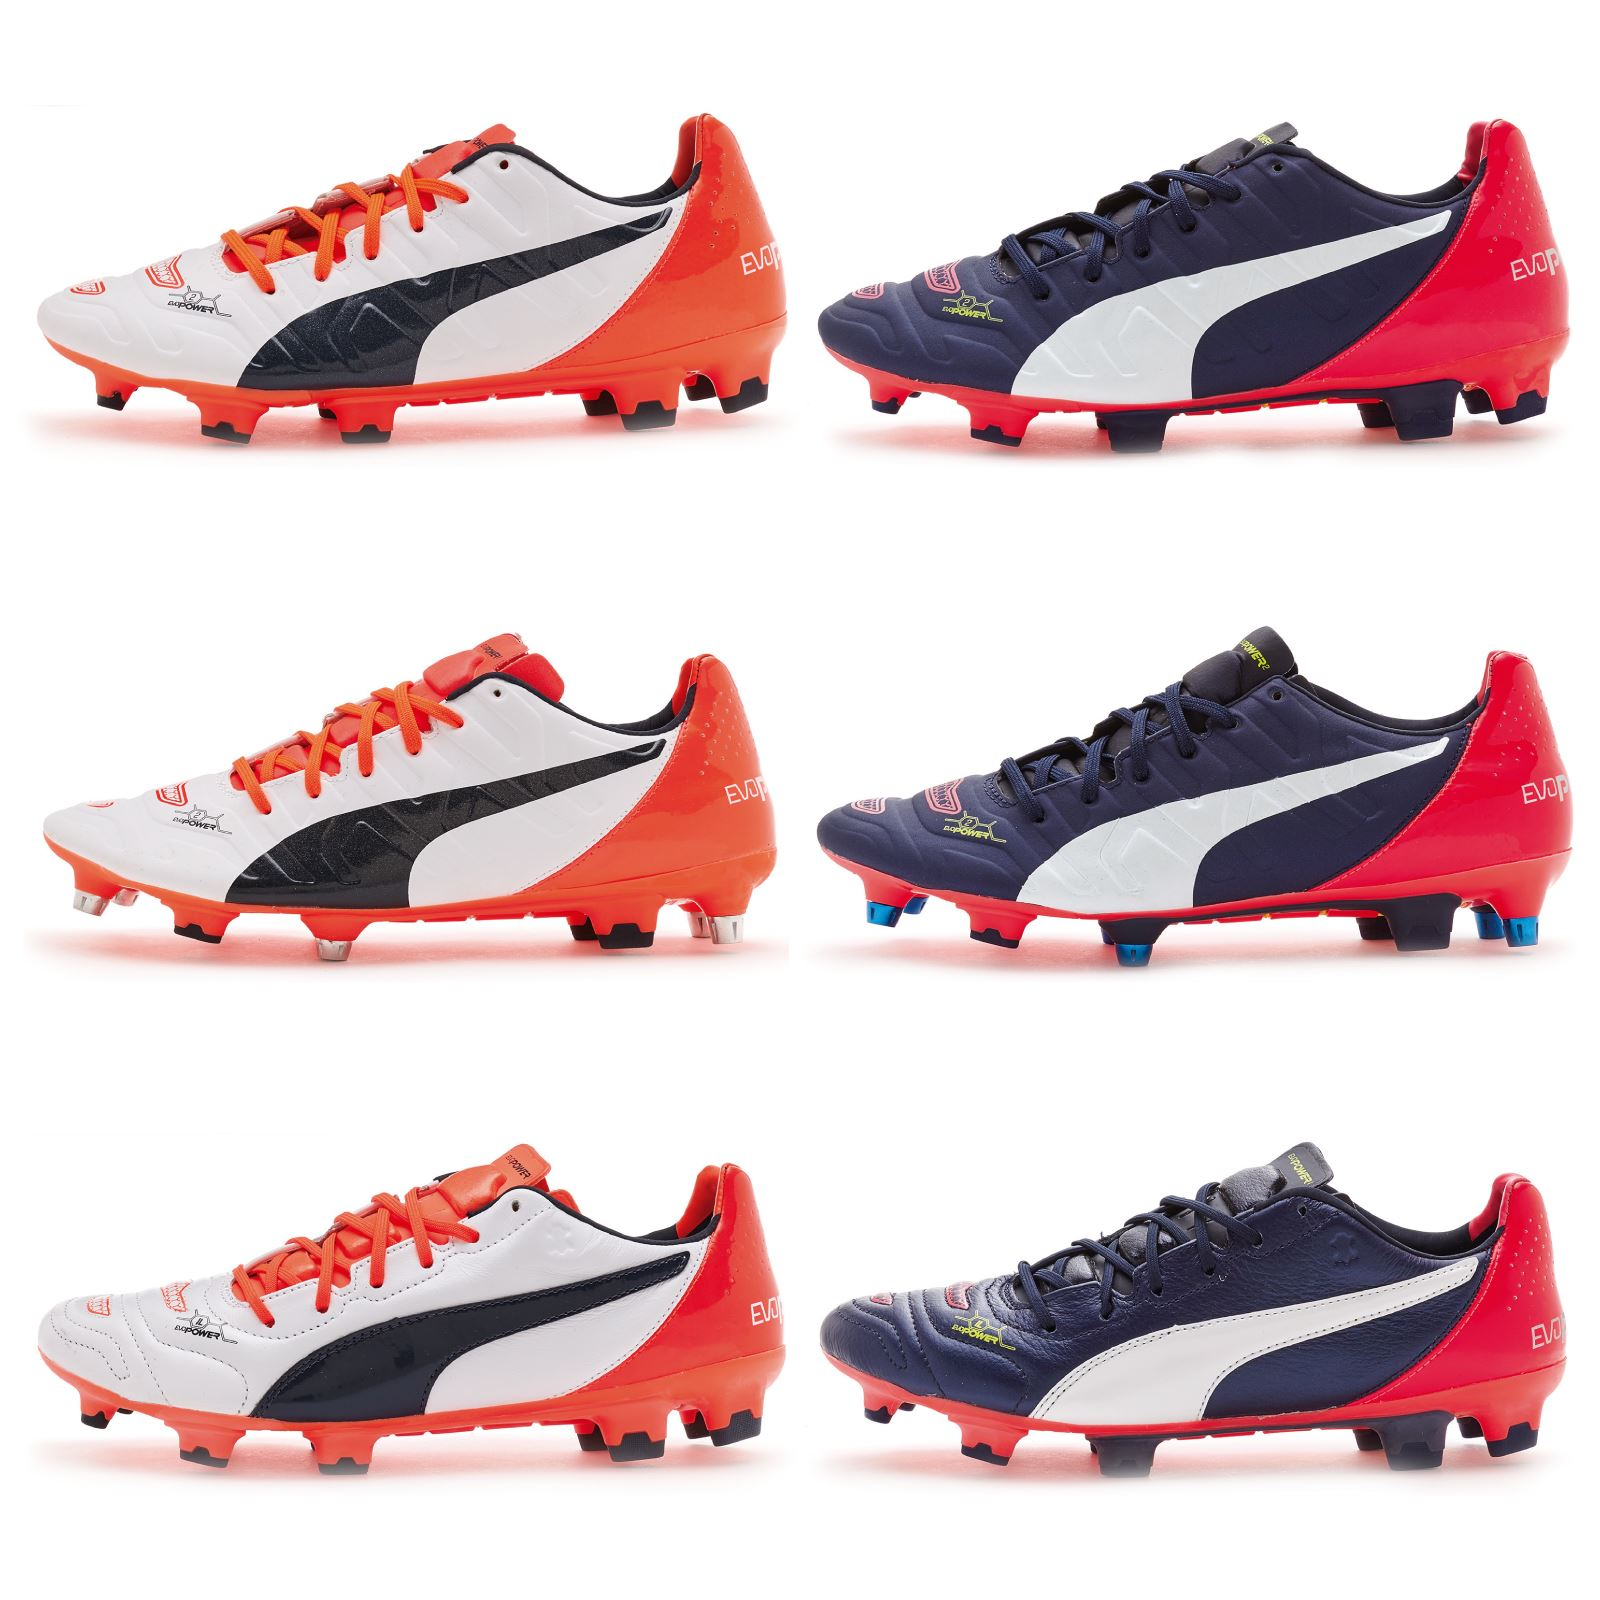 Details about Puma EvoPower 1.2   2.2 Football Boots Soccer Cleats In Black  White Red   Orange 48fd35a6c